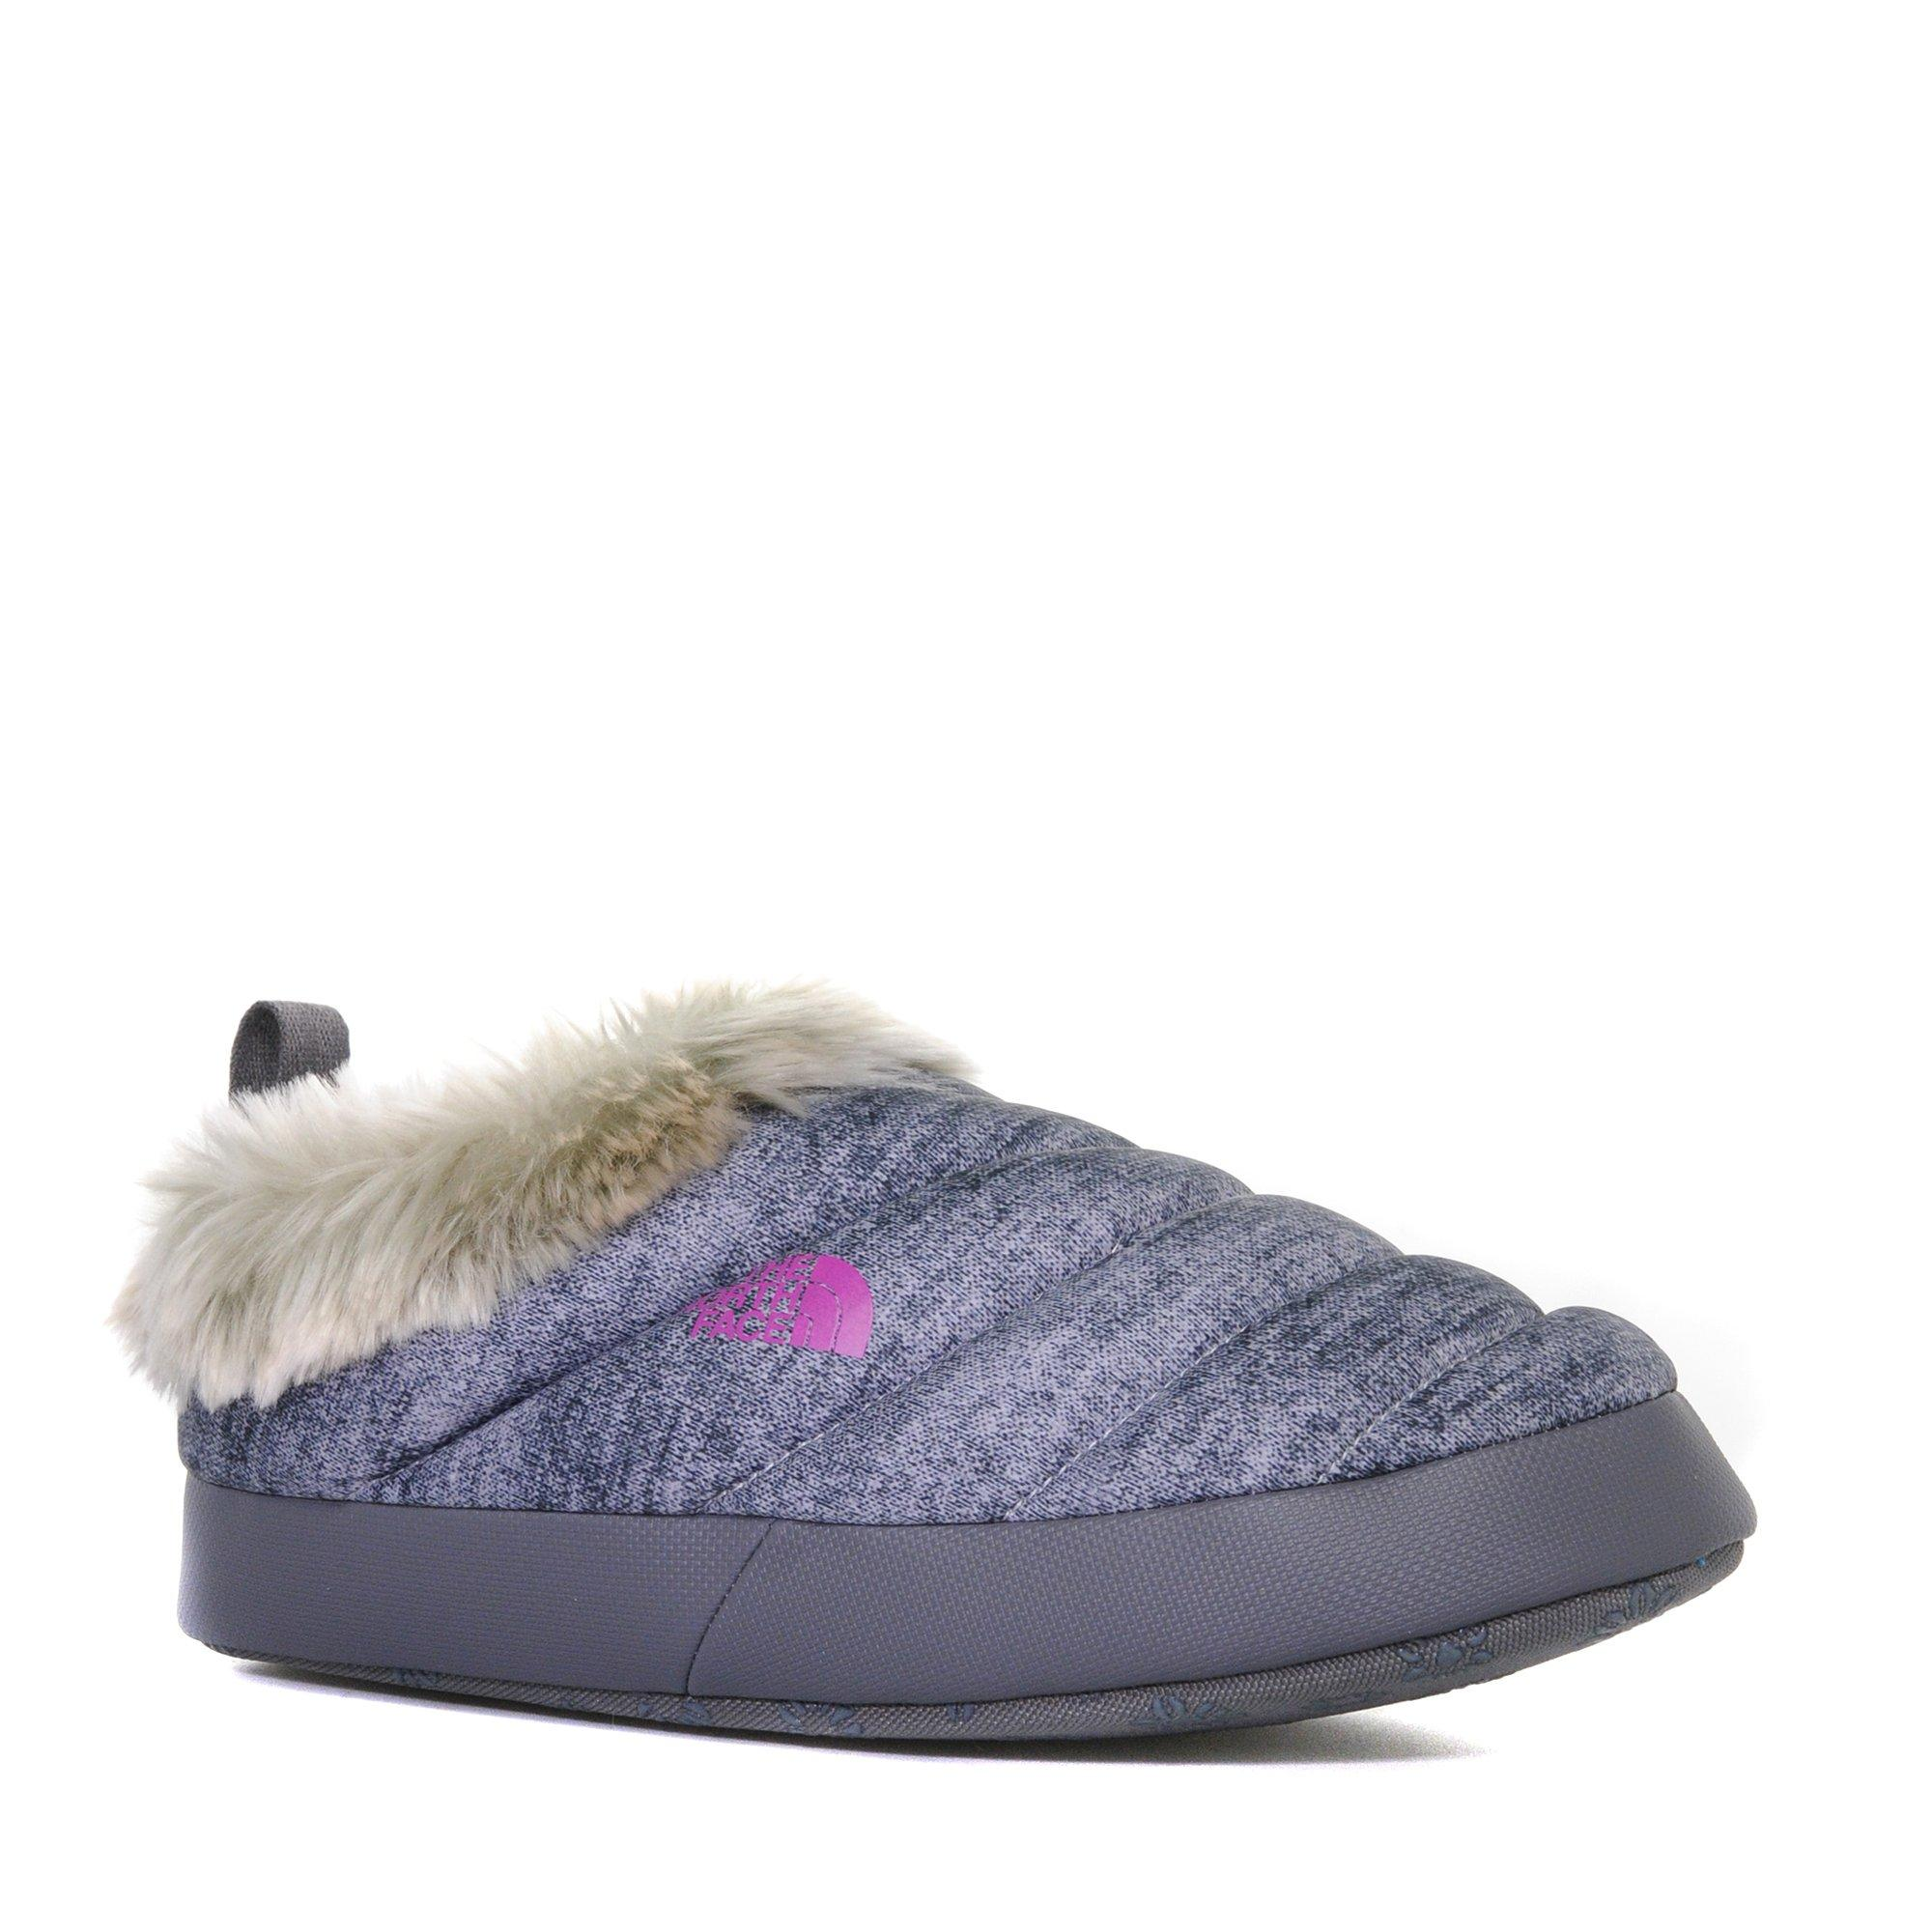 The North Face Womens Nse Tent Mule Faux Fur II Slipper Grey